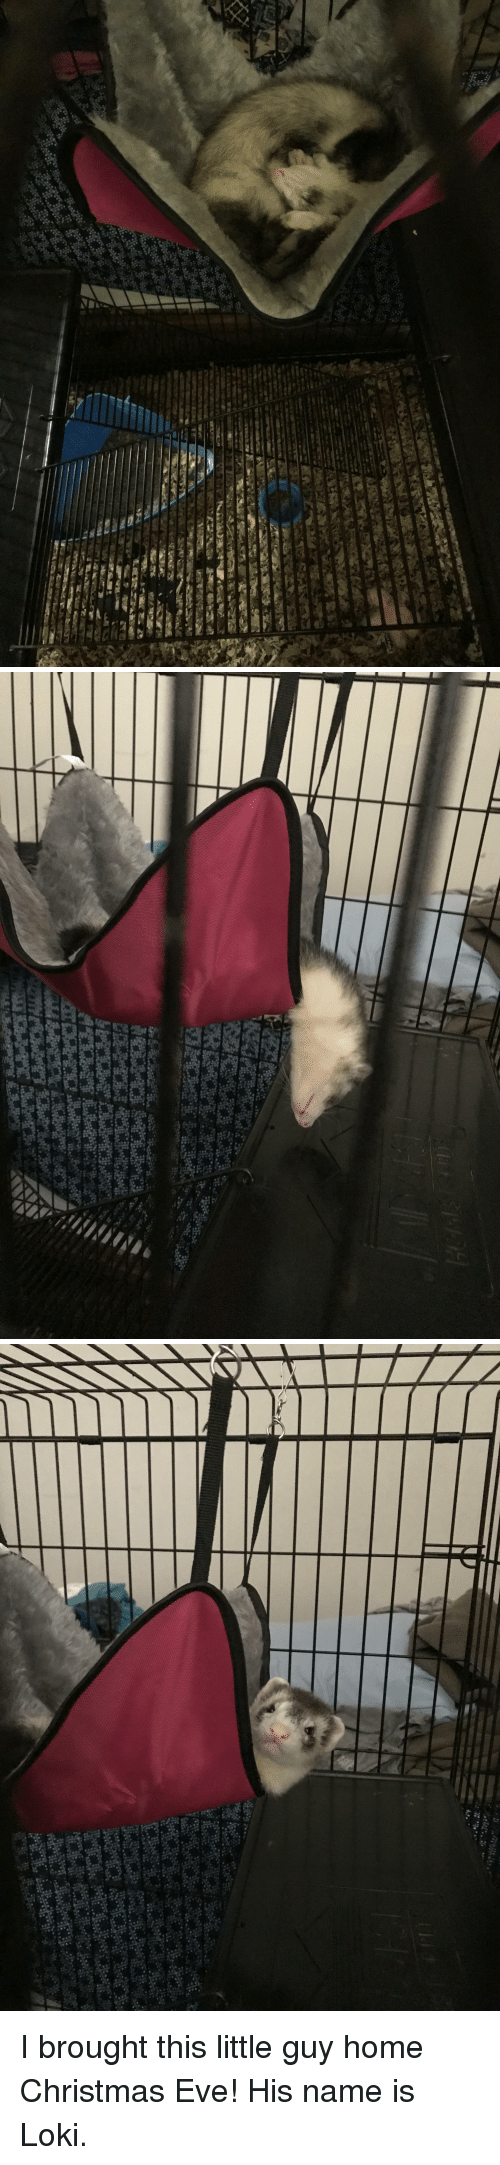 Christmas, Ferret, and Hammock: I brought this little guy home Christmas Eve! His name is Loki.